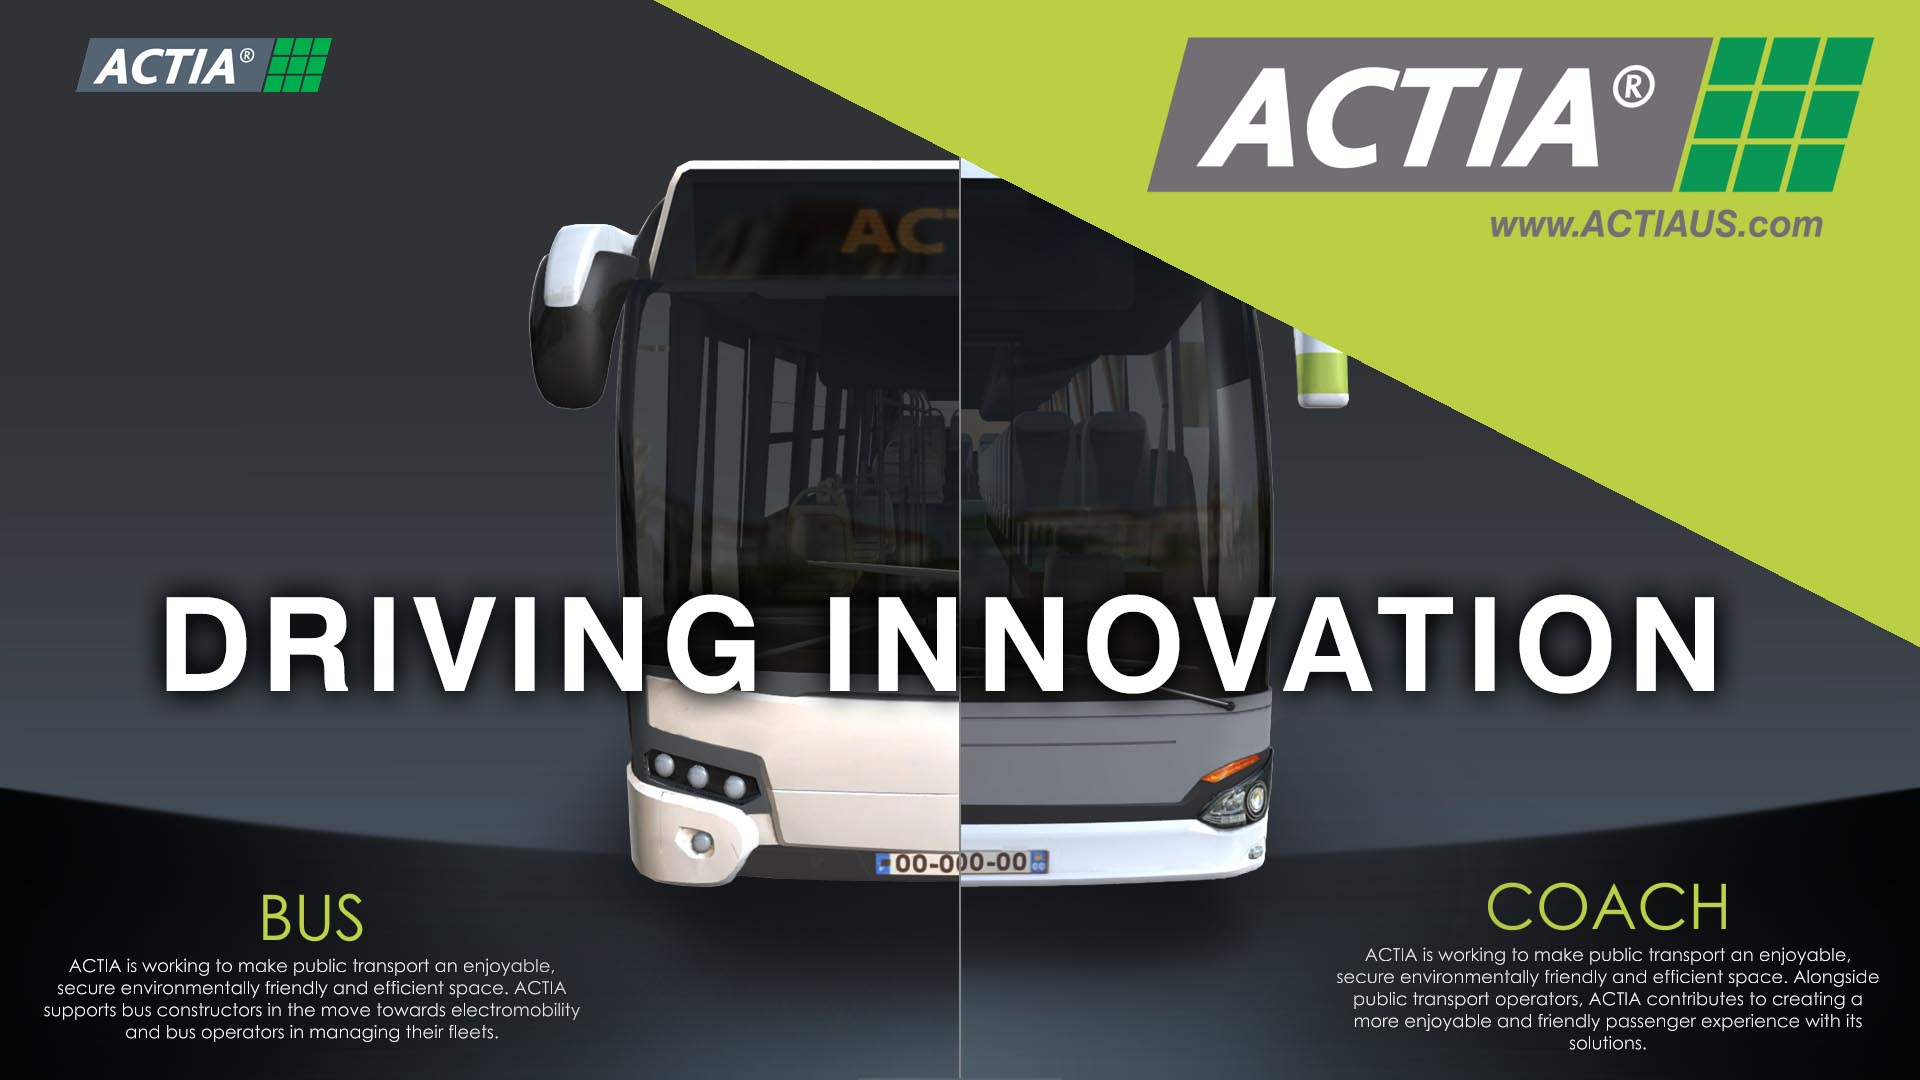 Driving Innovation (by ACTIA)